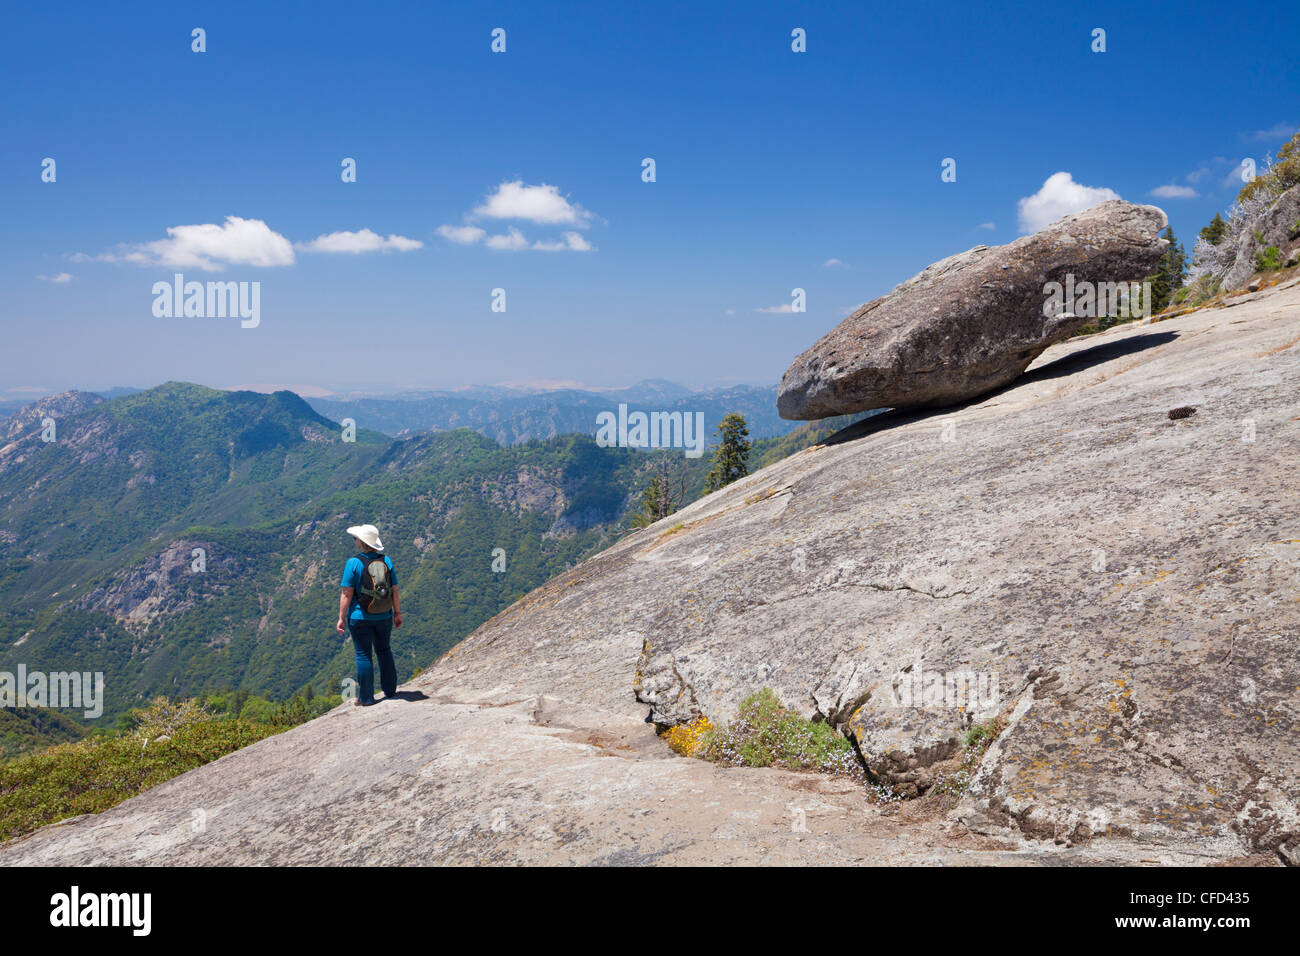 Tourist hiker, at Hanging rock, Tulare County, Sequoia National Park, Sierra Nevada, California, USA - Stock Image